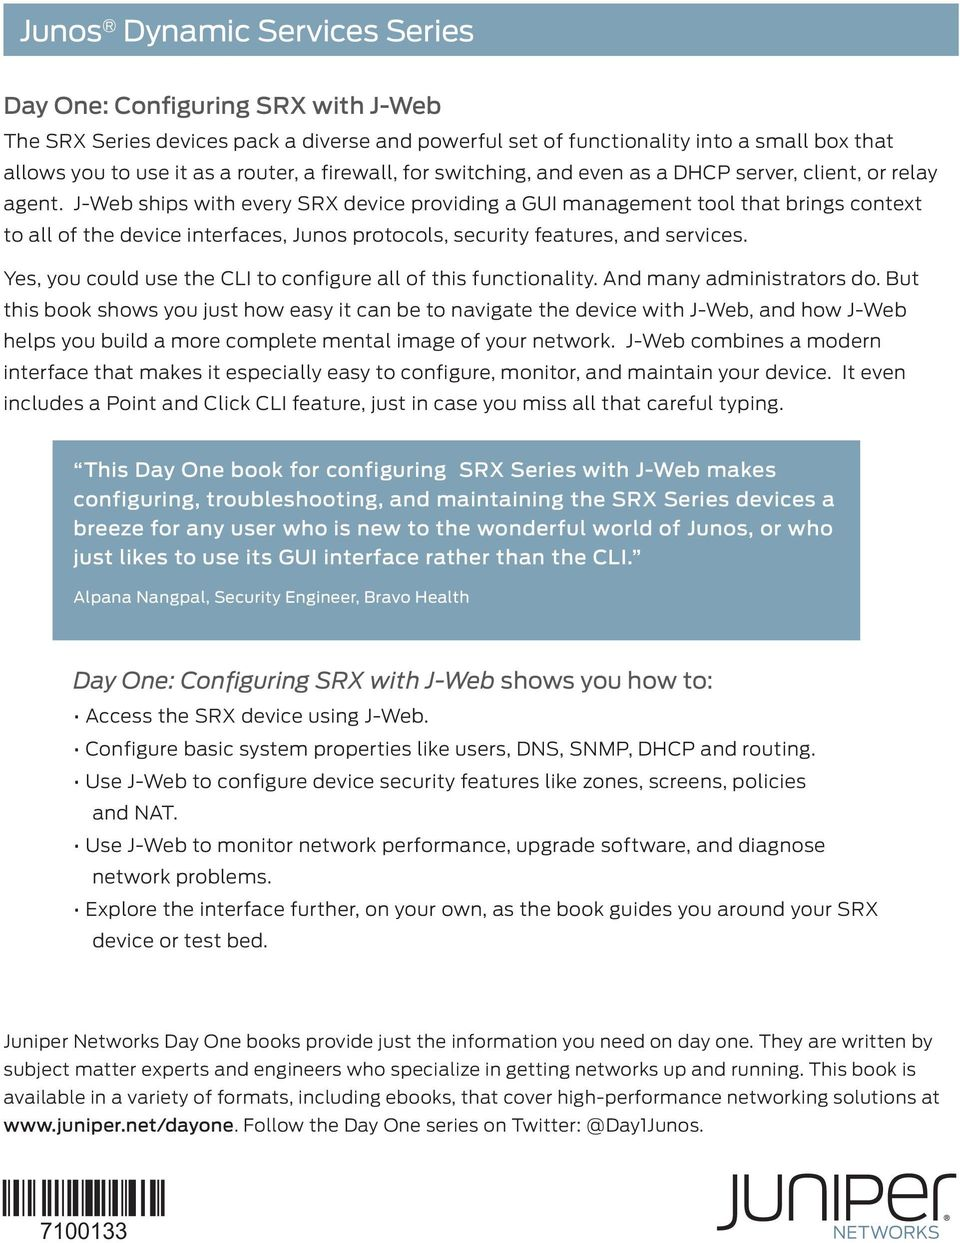 DAY ONE: CONFIGURING SRX SERIES WITH J-WEB - PDF